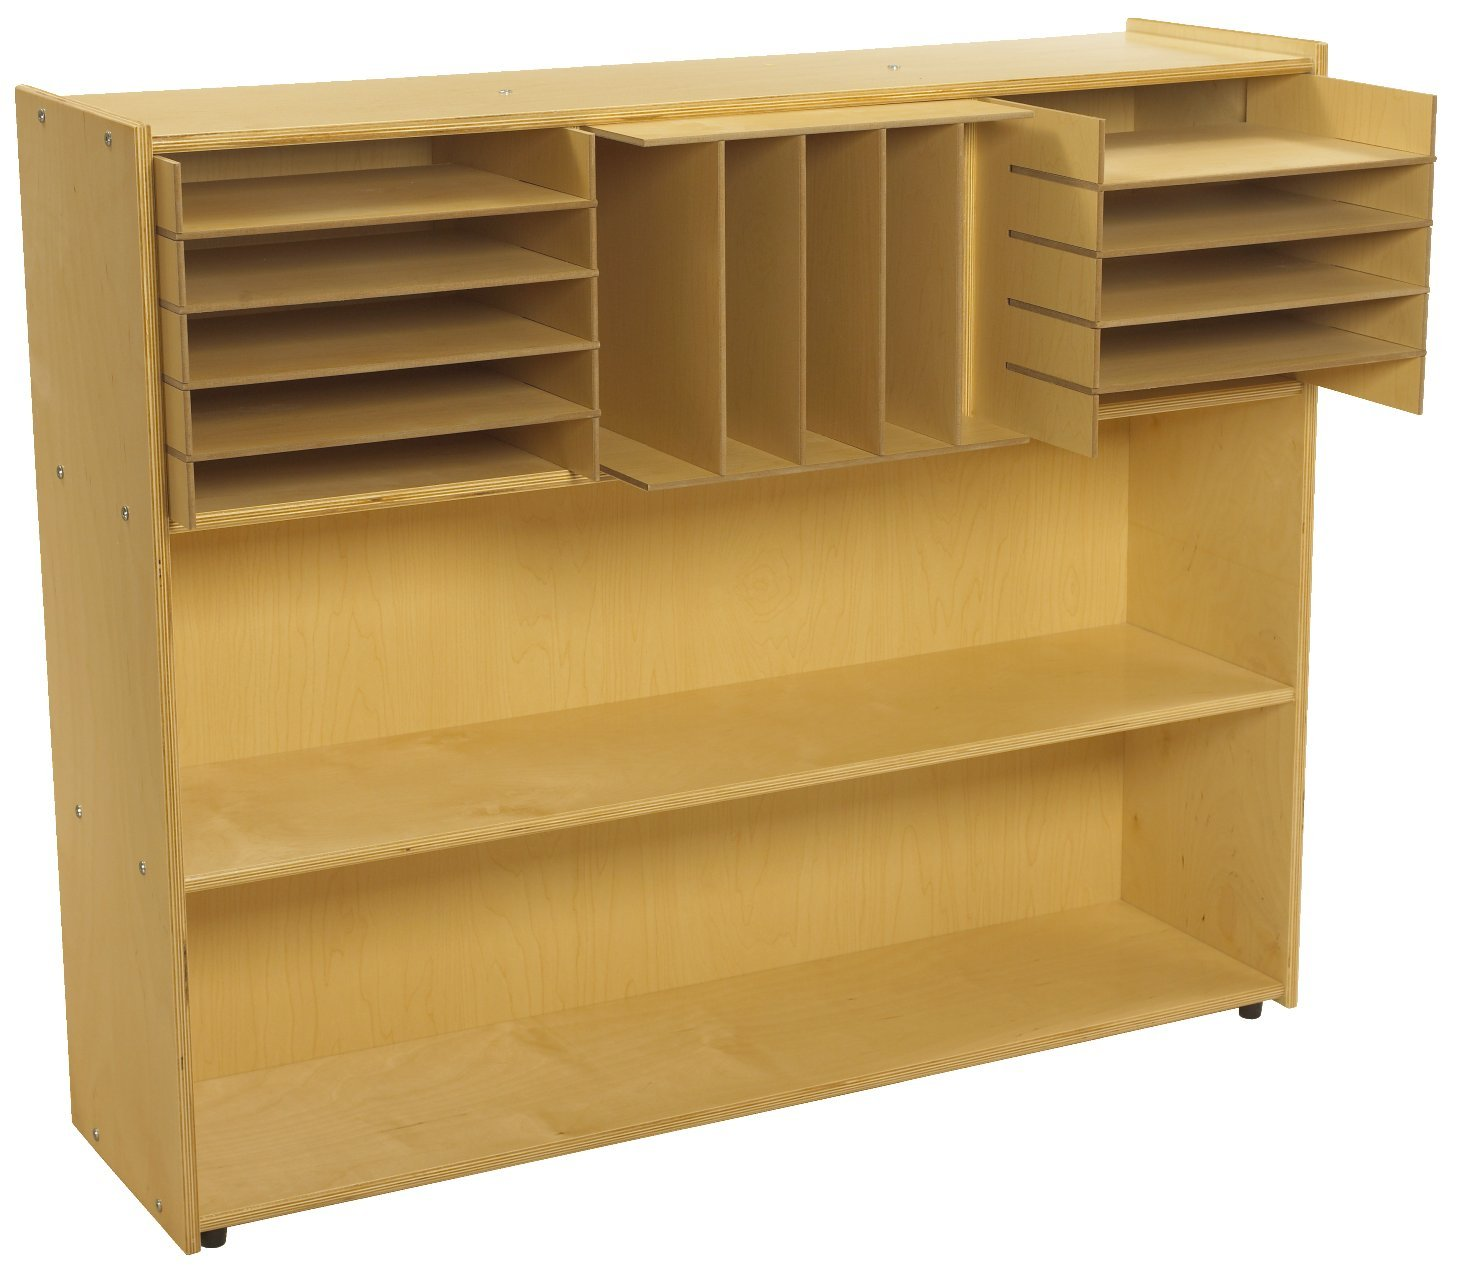 Childcraft 1526311 ABC Furnishings Sectional Inserts for 3-Cubby Storage Unit, 6'' Height, 13'' Width, 16'' Length, Natural Wood (Pack of 18)